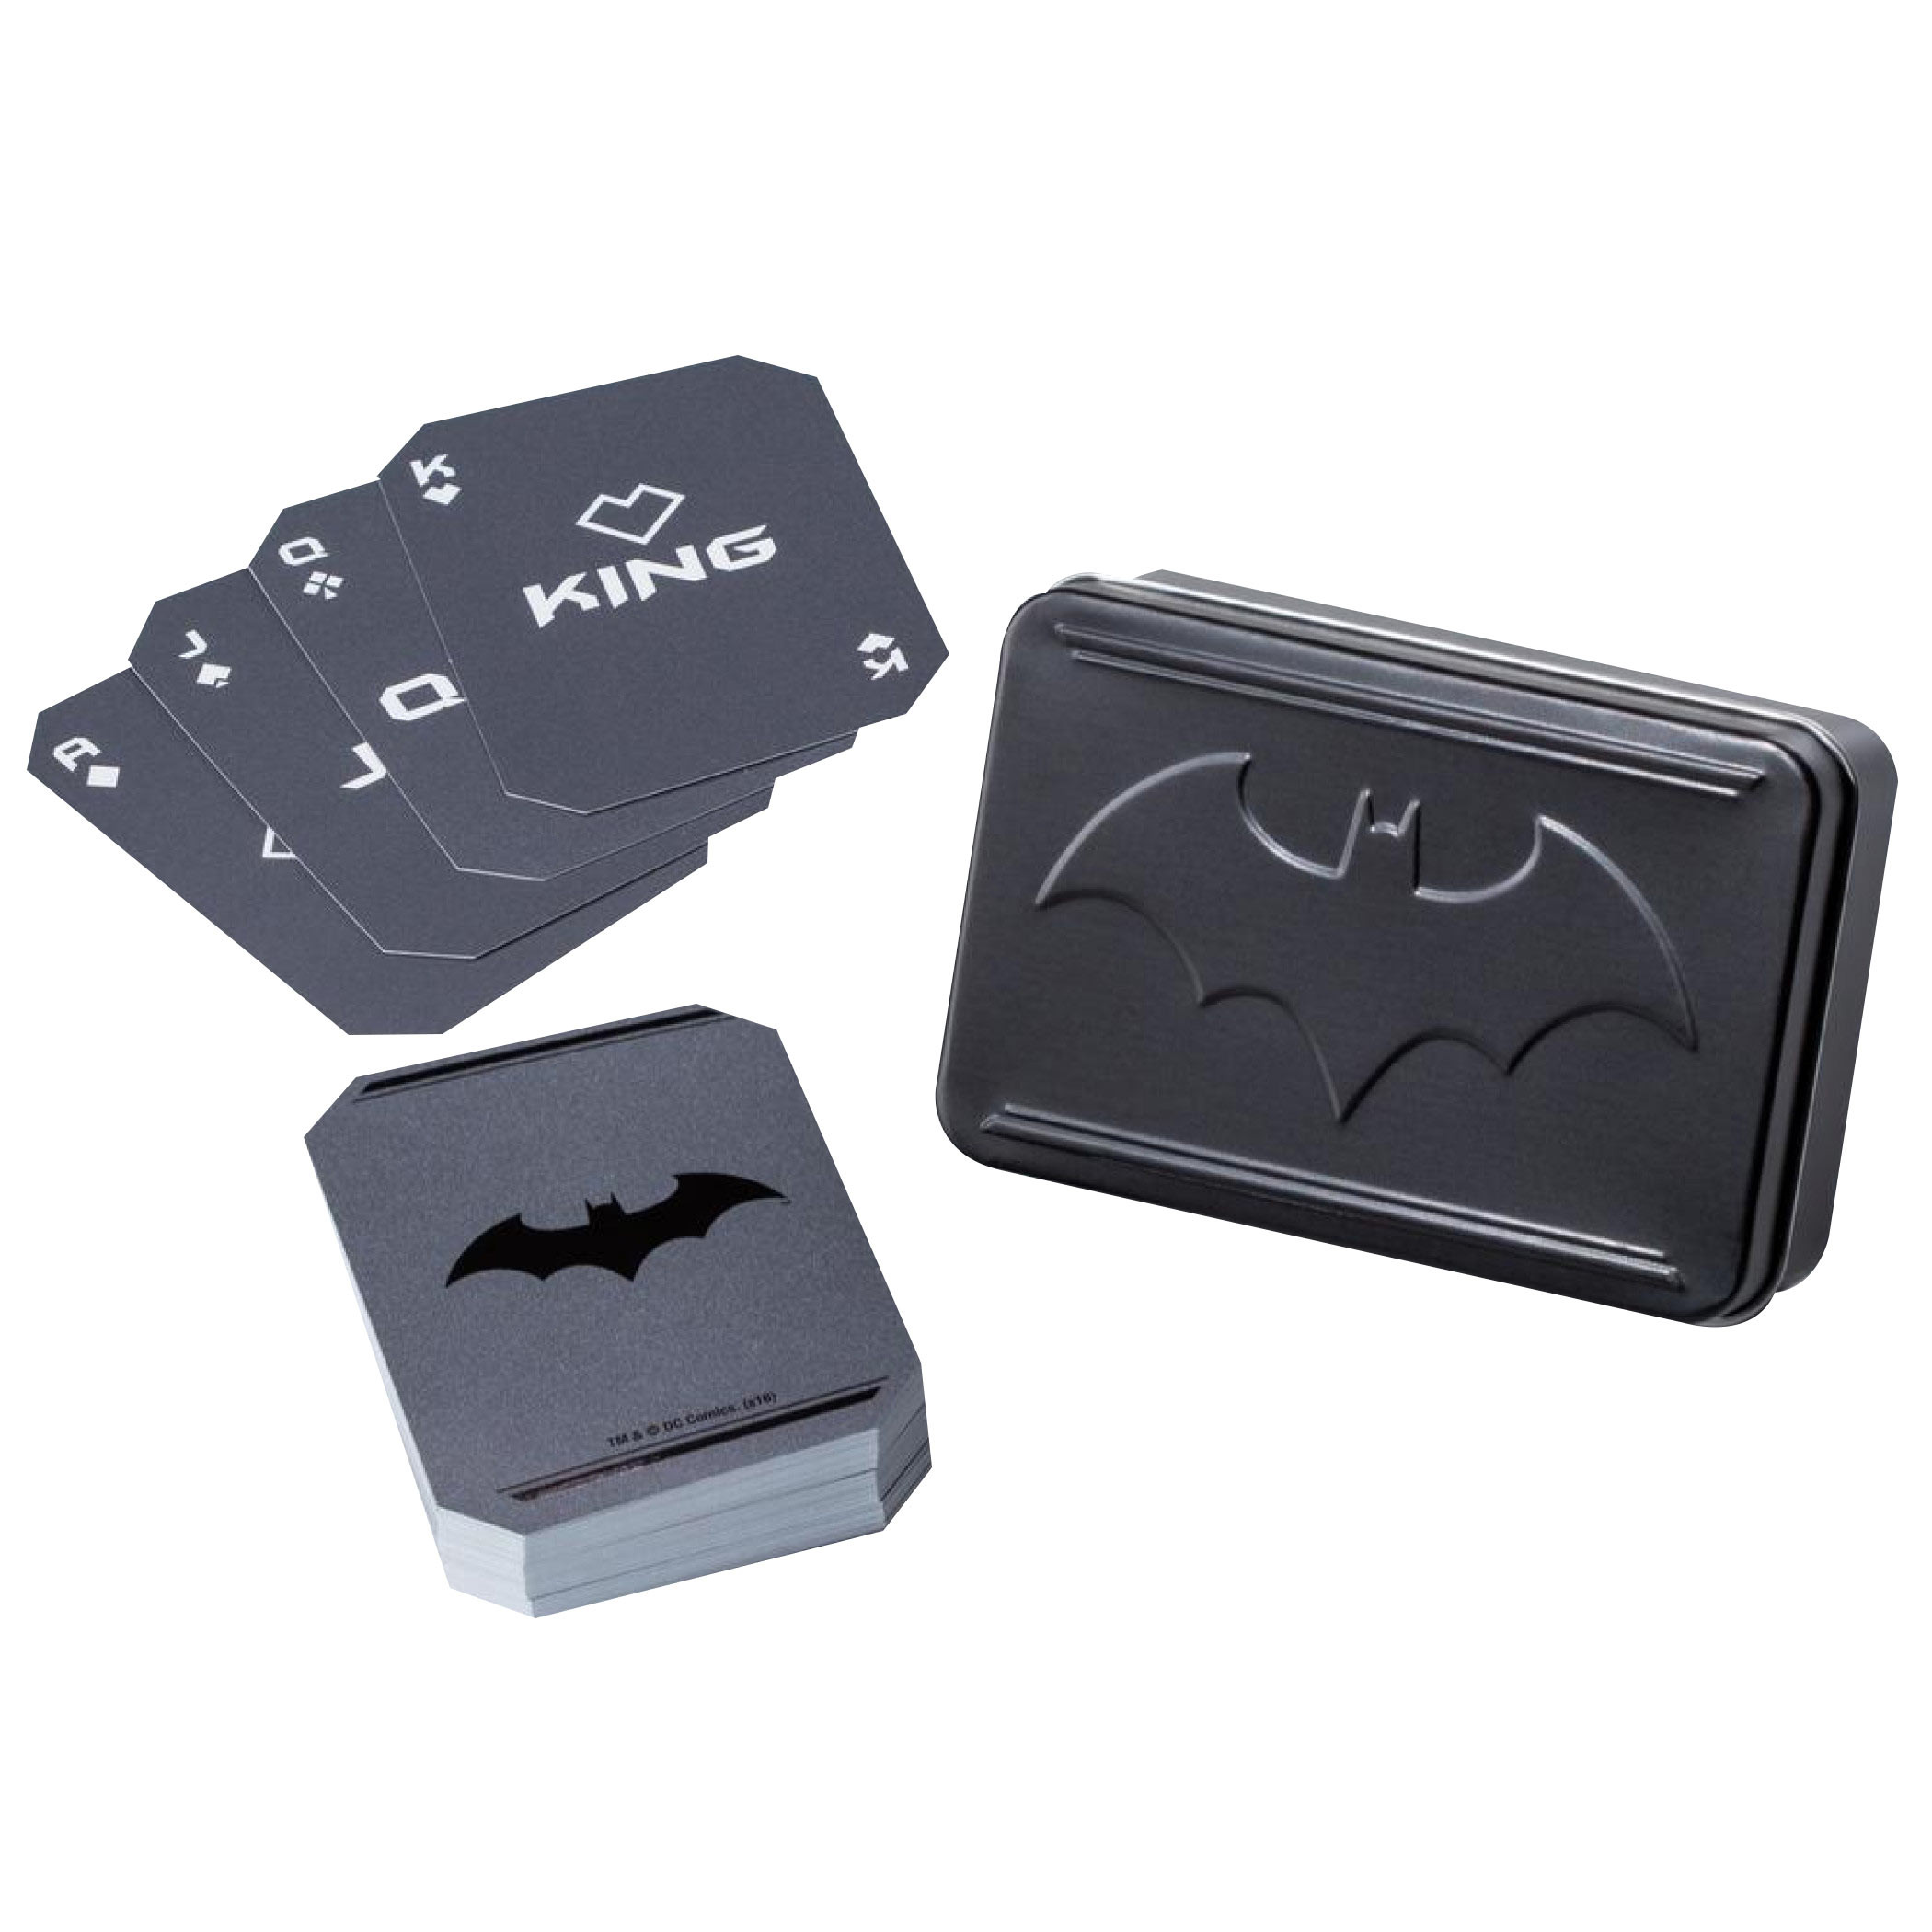 DC Comics Black Batman Playing Cards